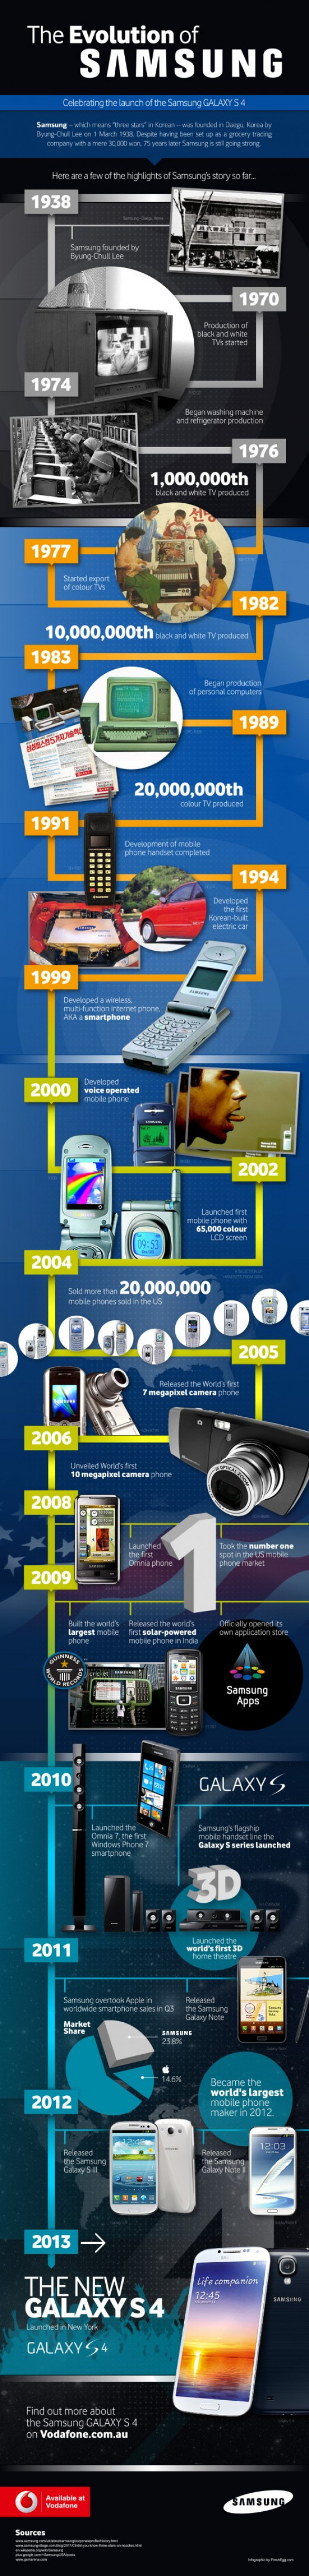 The Evolution of Samsung